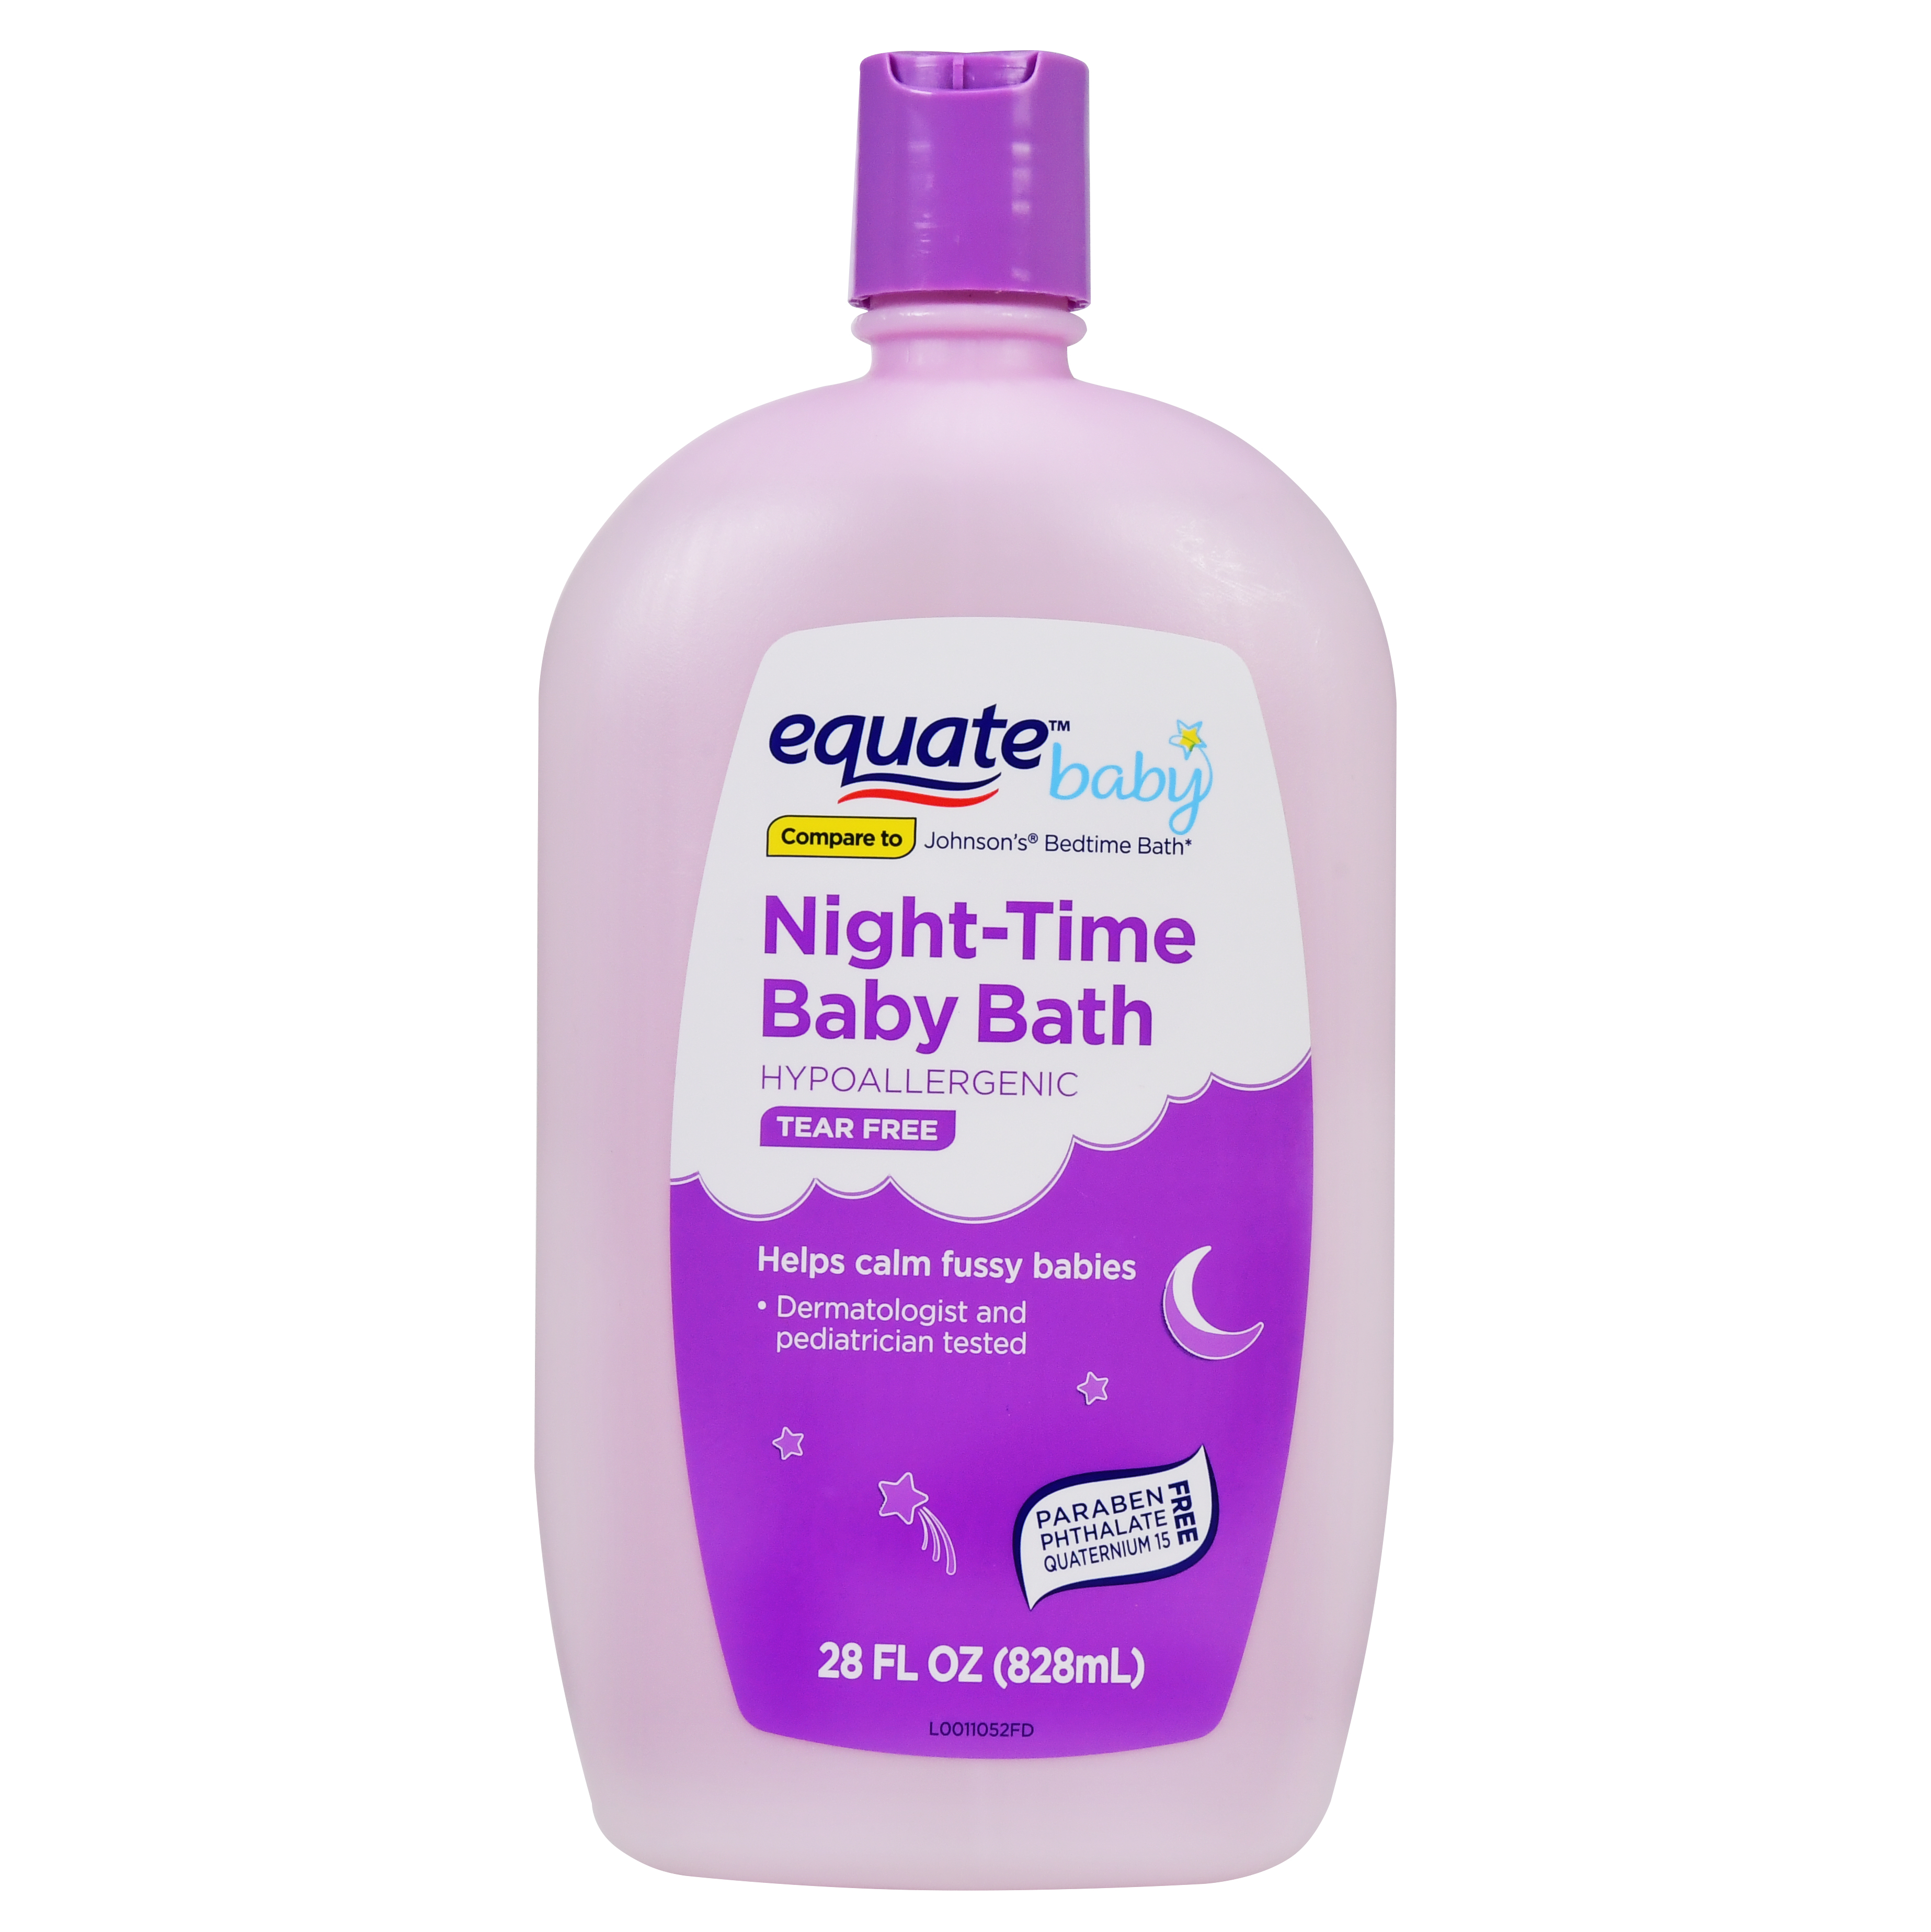 Equate Tear Free Night-Time Baby Bath, 28 Fl Oz